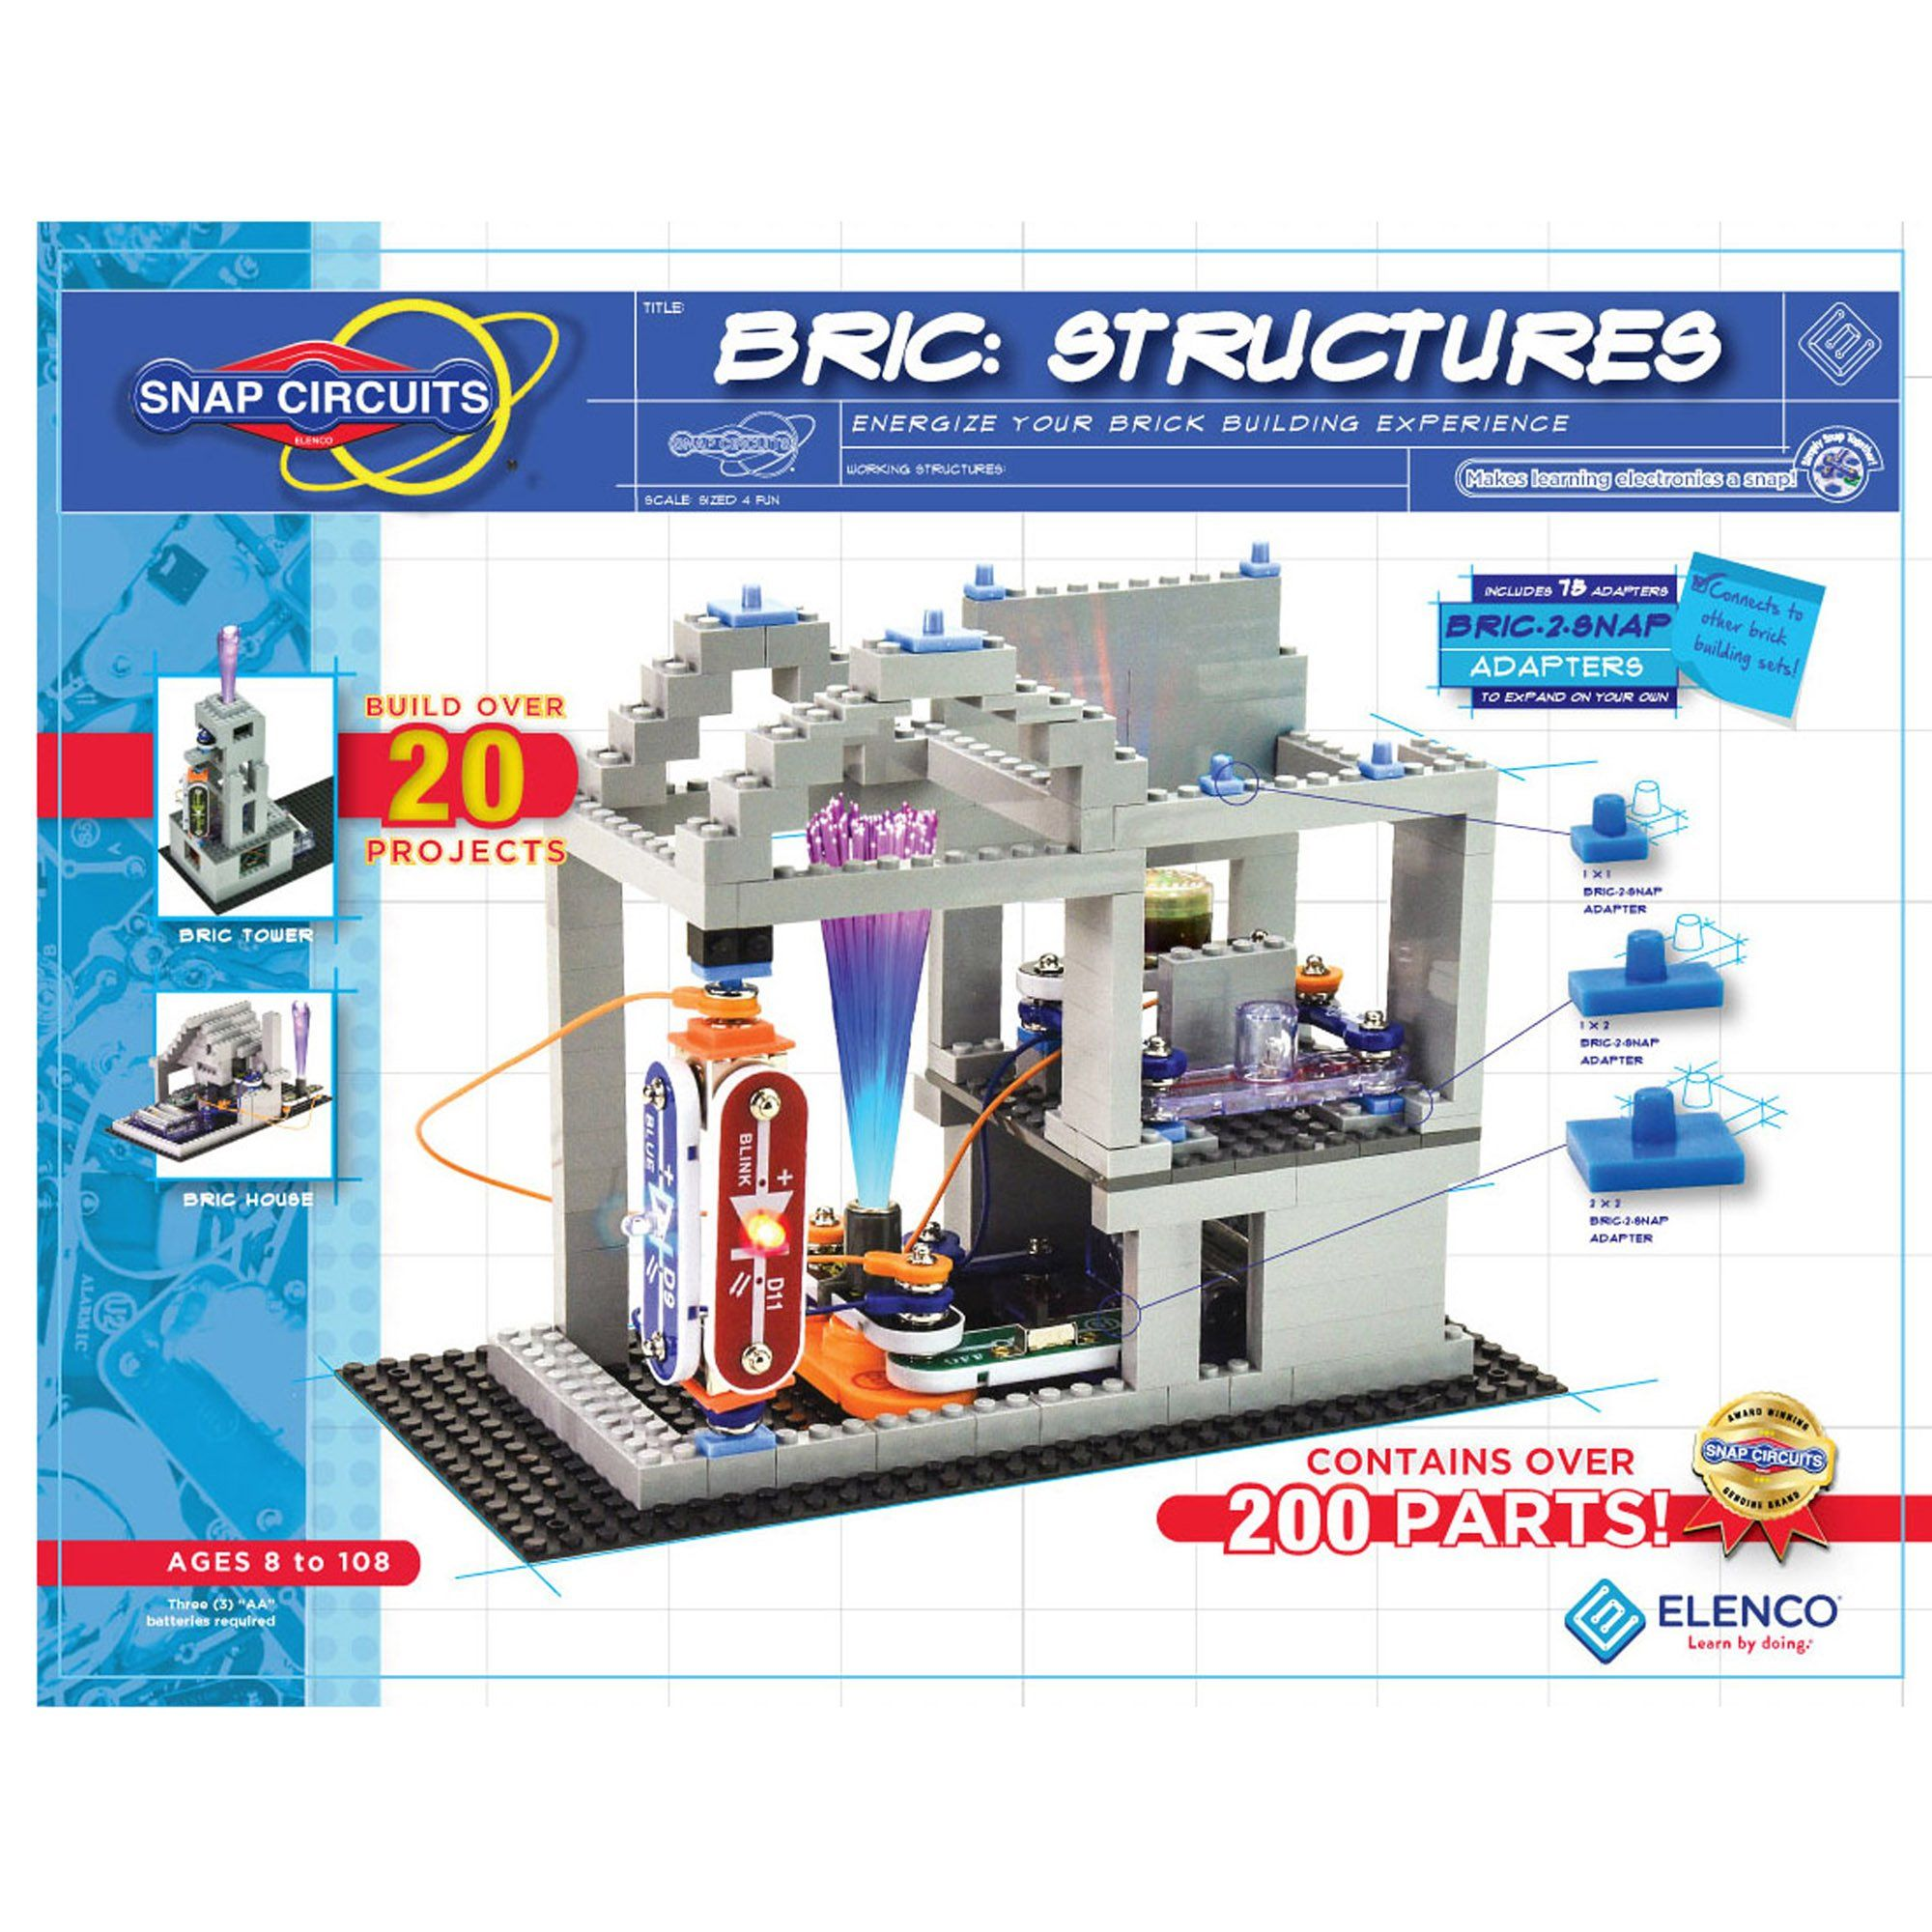 Elenco Snap Circuits Bric Structures 20 Stem Projects Electronics Lights Scbric1